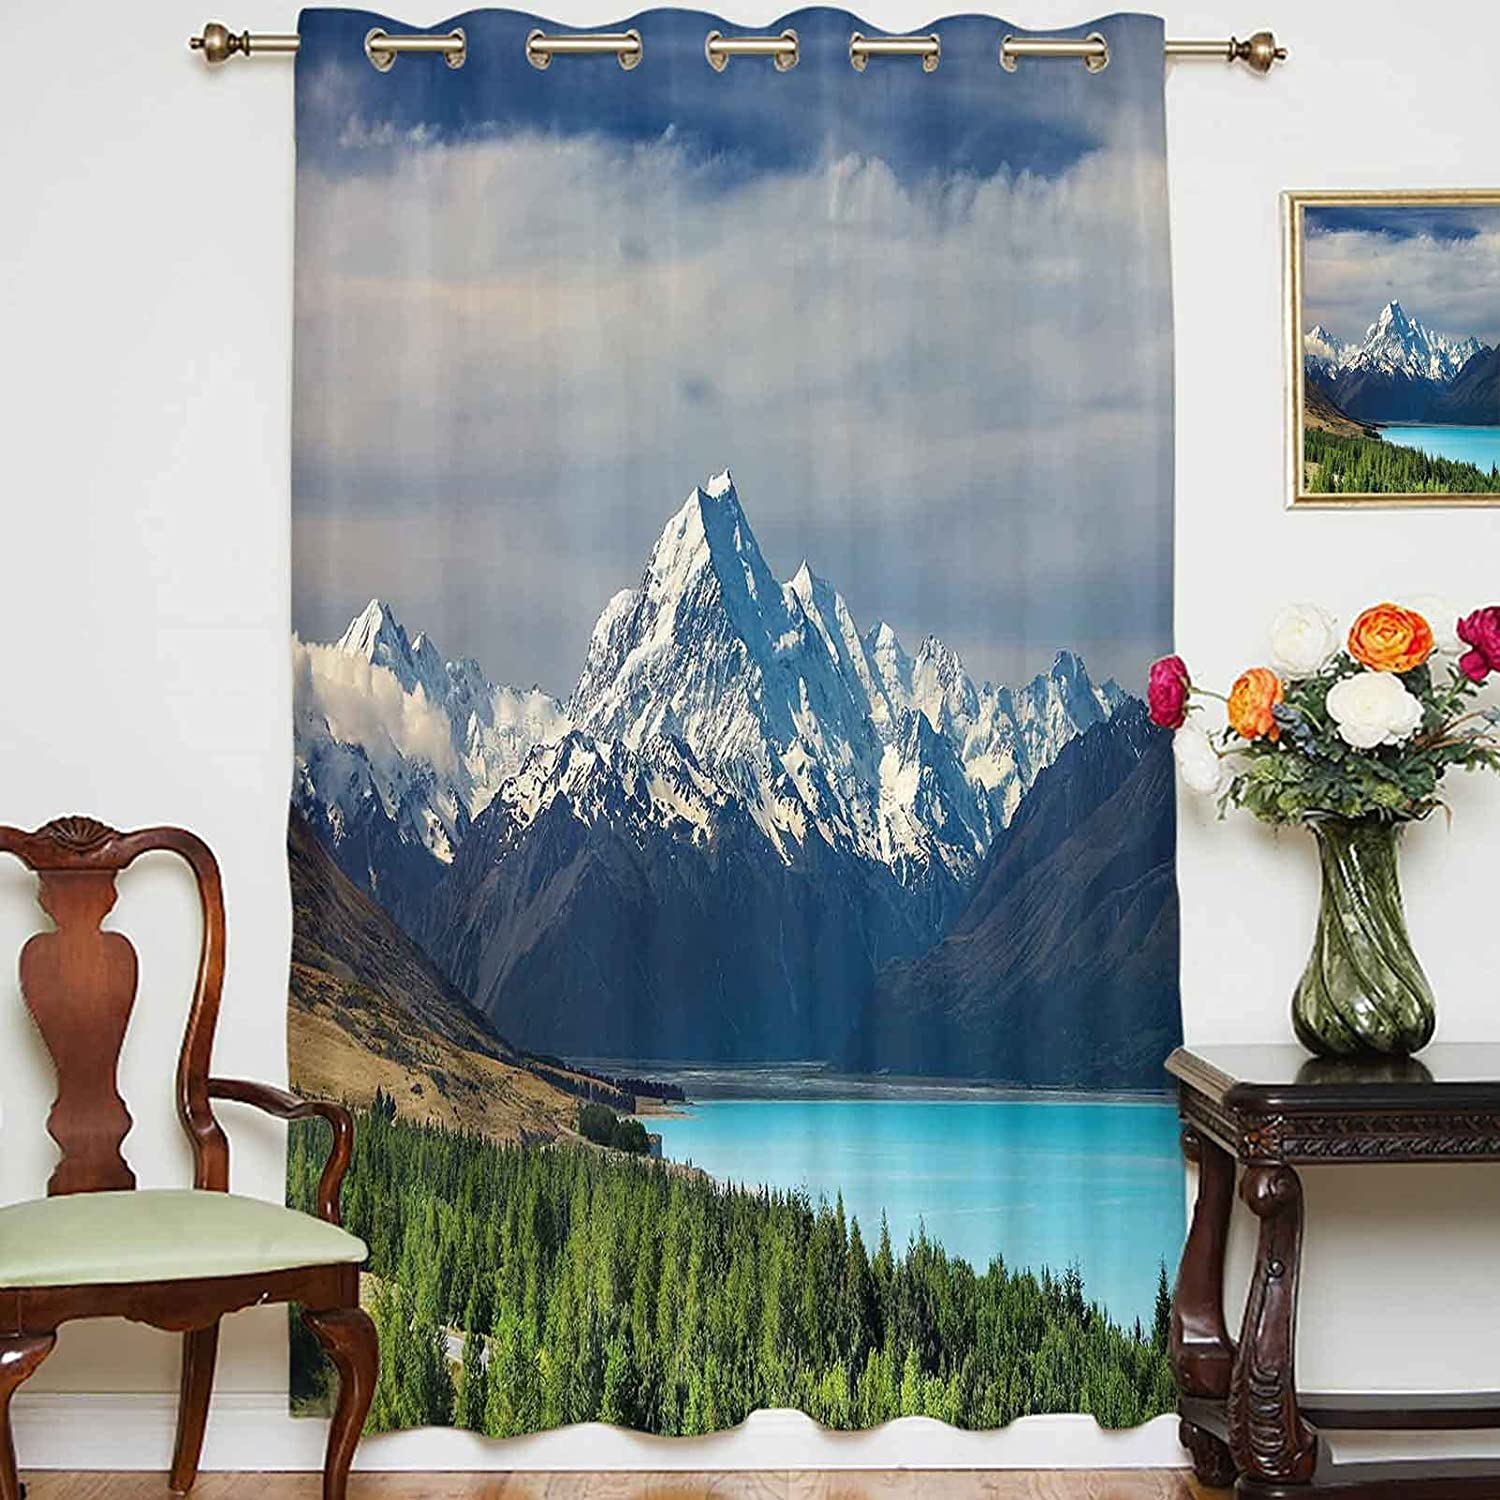 Blackout Curtains Panels Mount Cook and Lake Max 60% OFF New Zelan in Pukaki Ranking TOP13